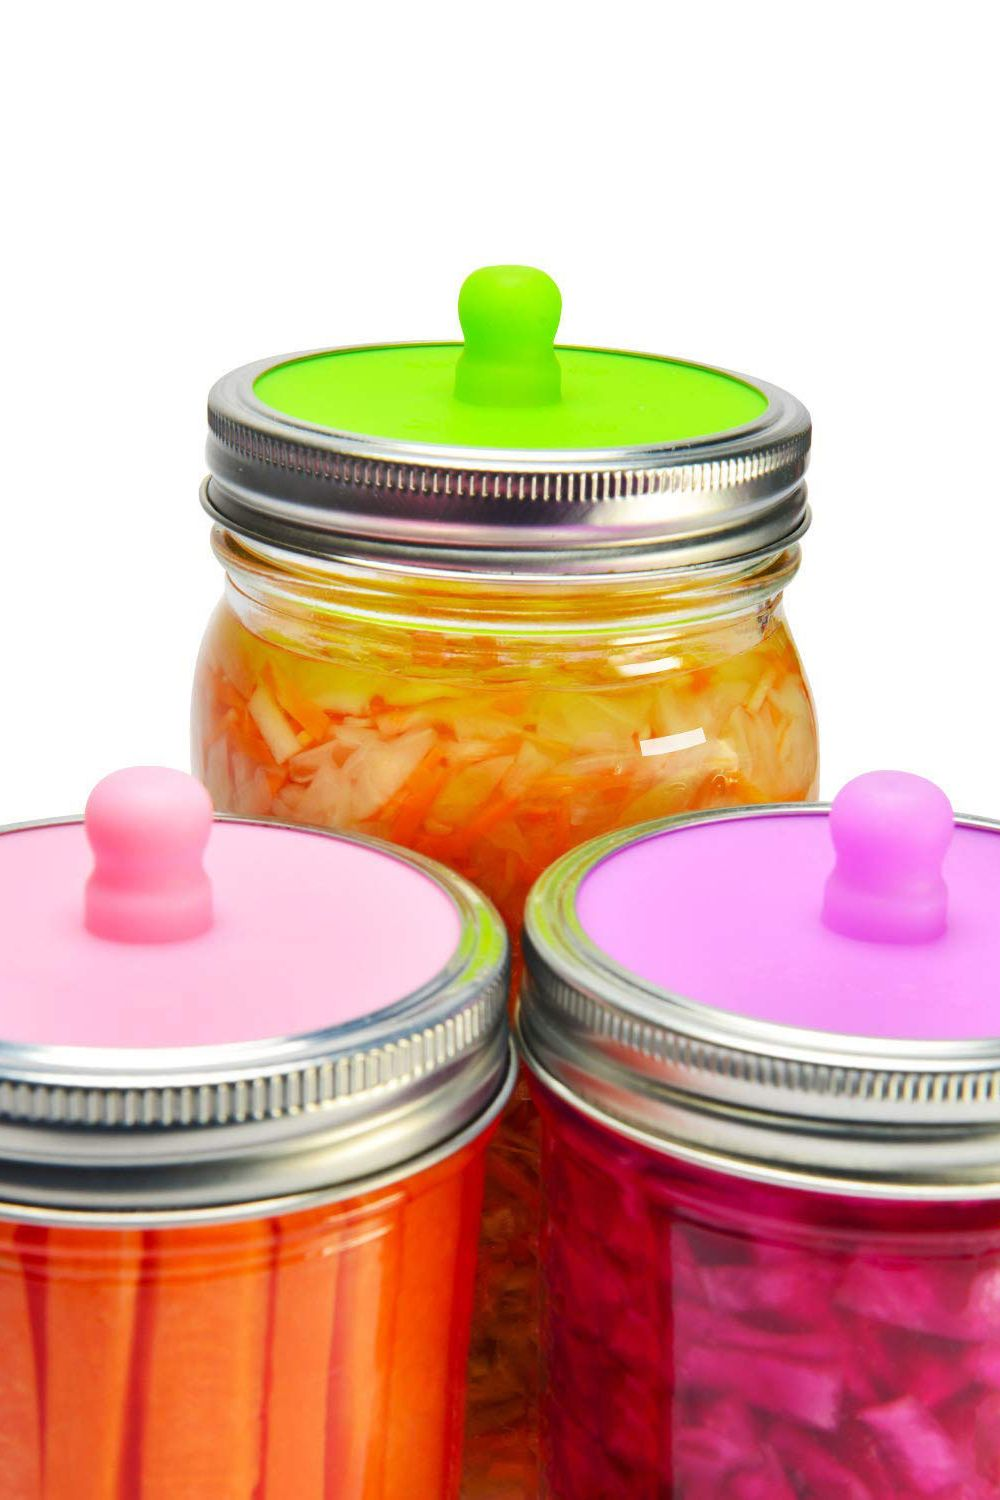 Fermentation Lids for Wide-Mouth Mason Jars